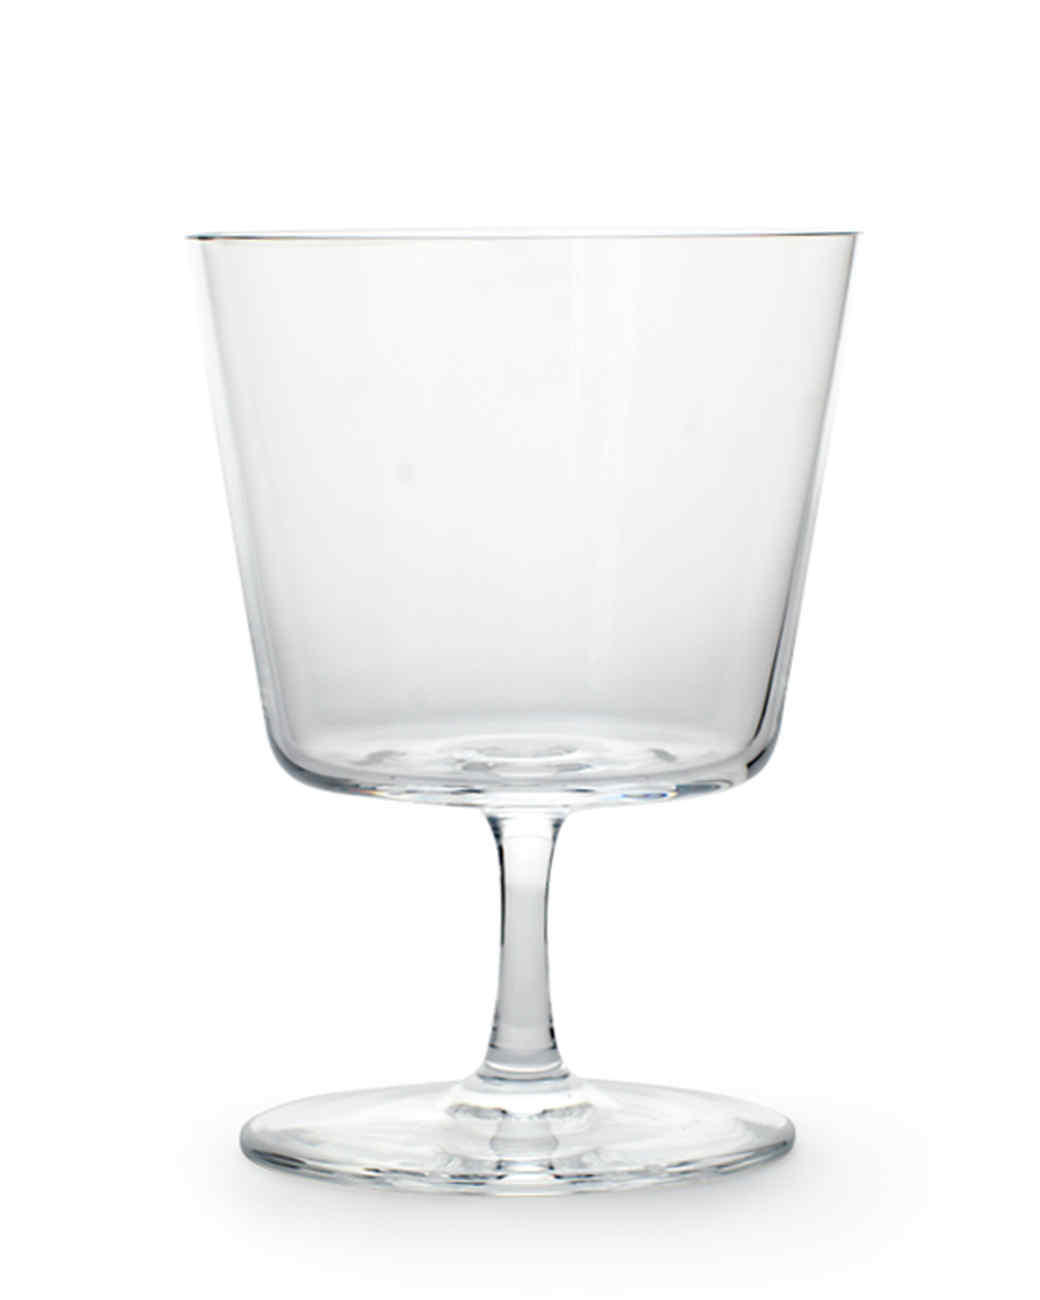 easy-entertaining-crate-glass-mld108950.jpg